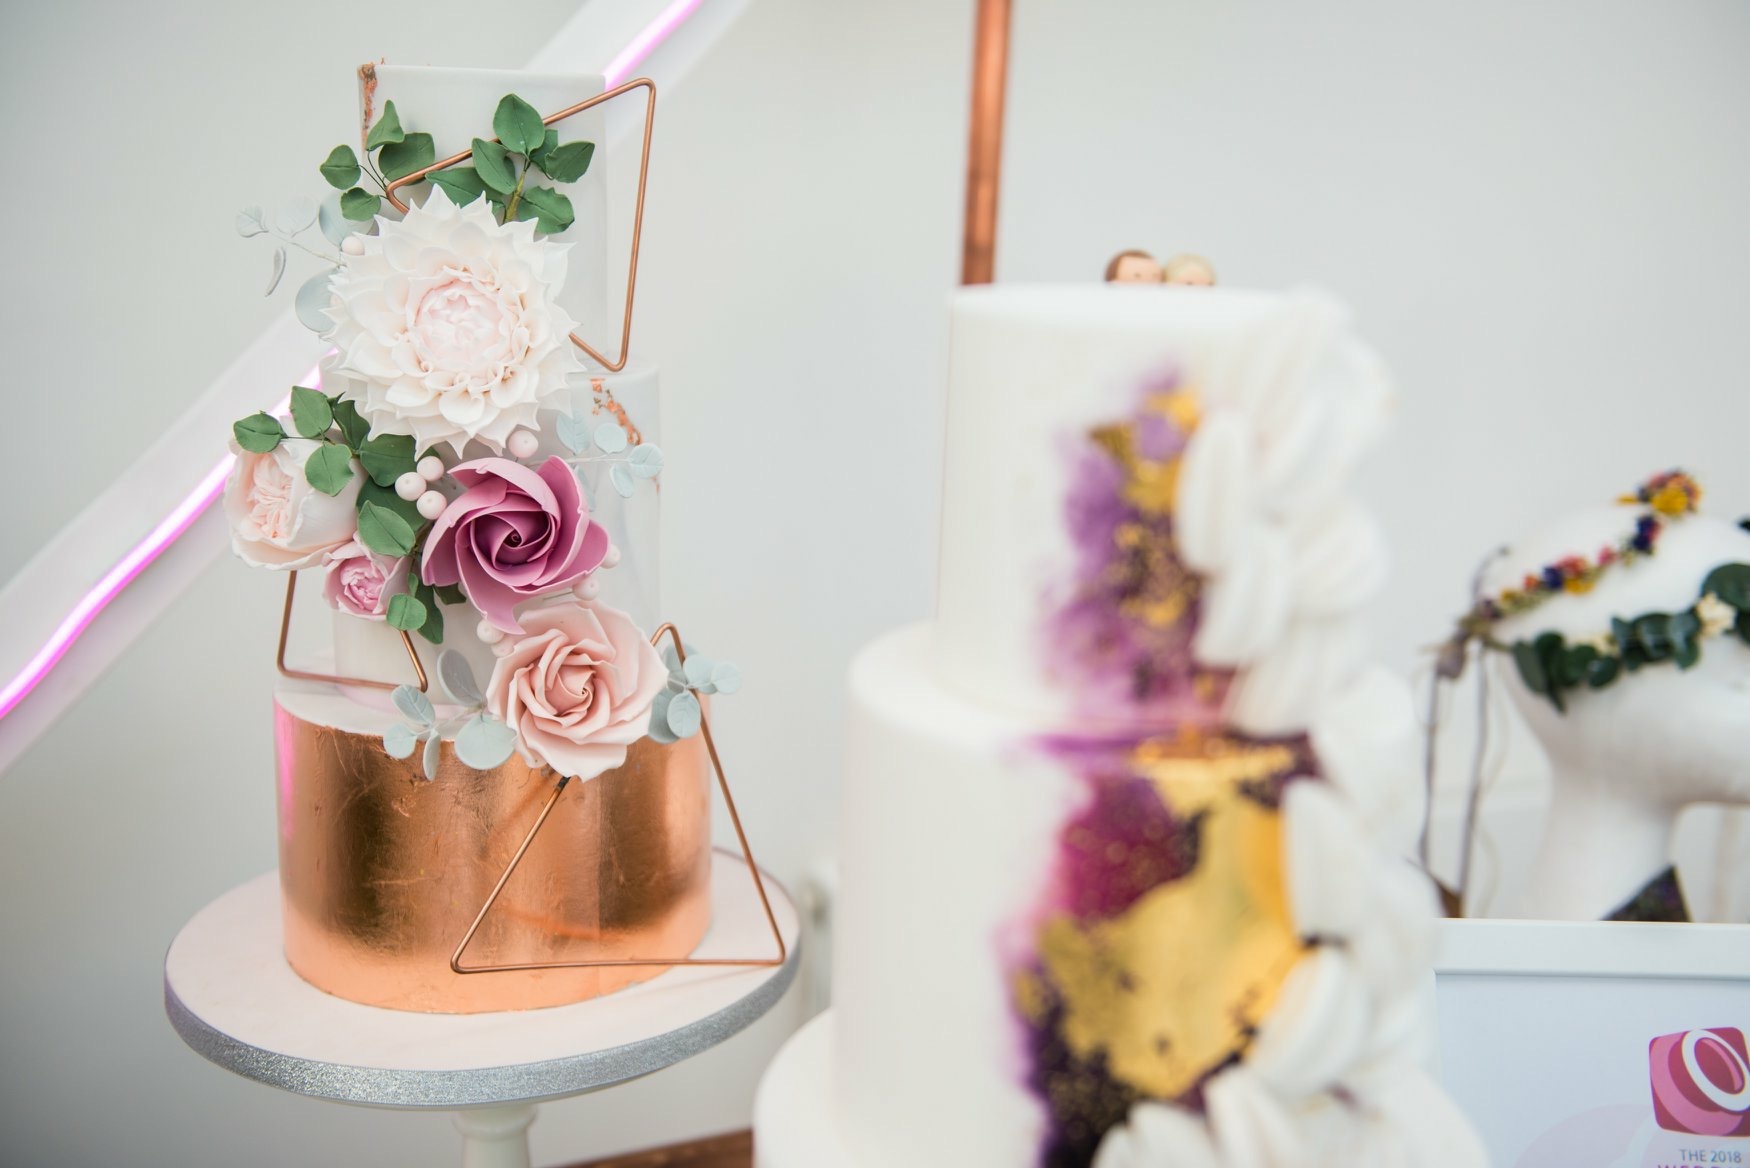 Image by  Nathan Dainty Weddings